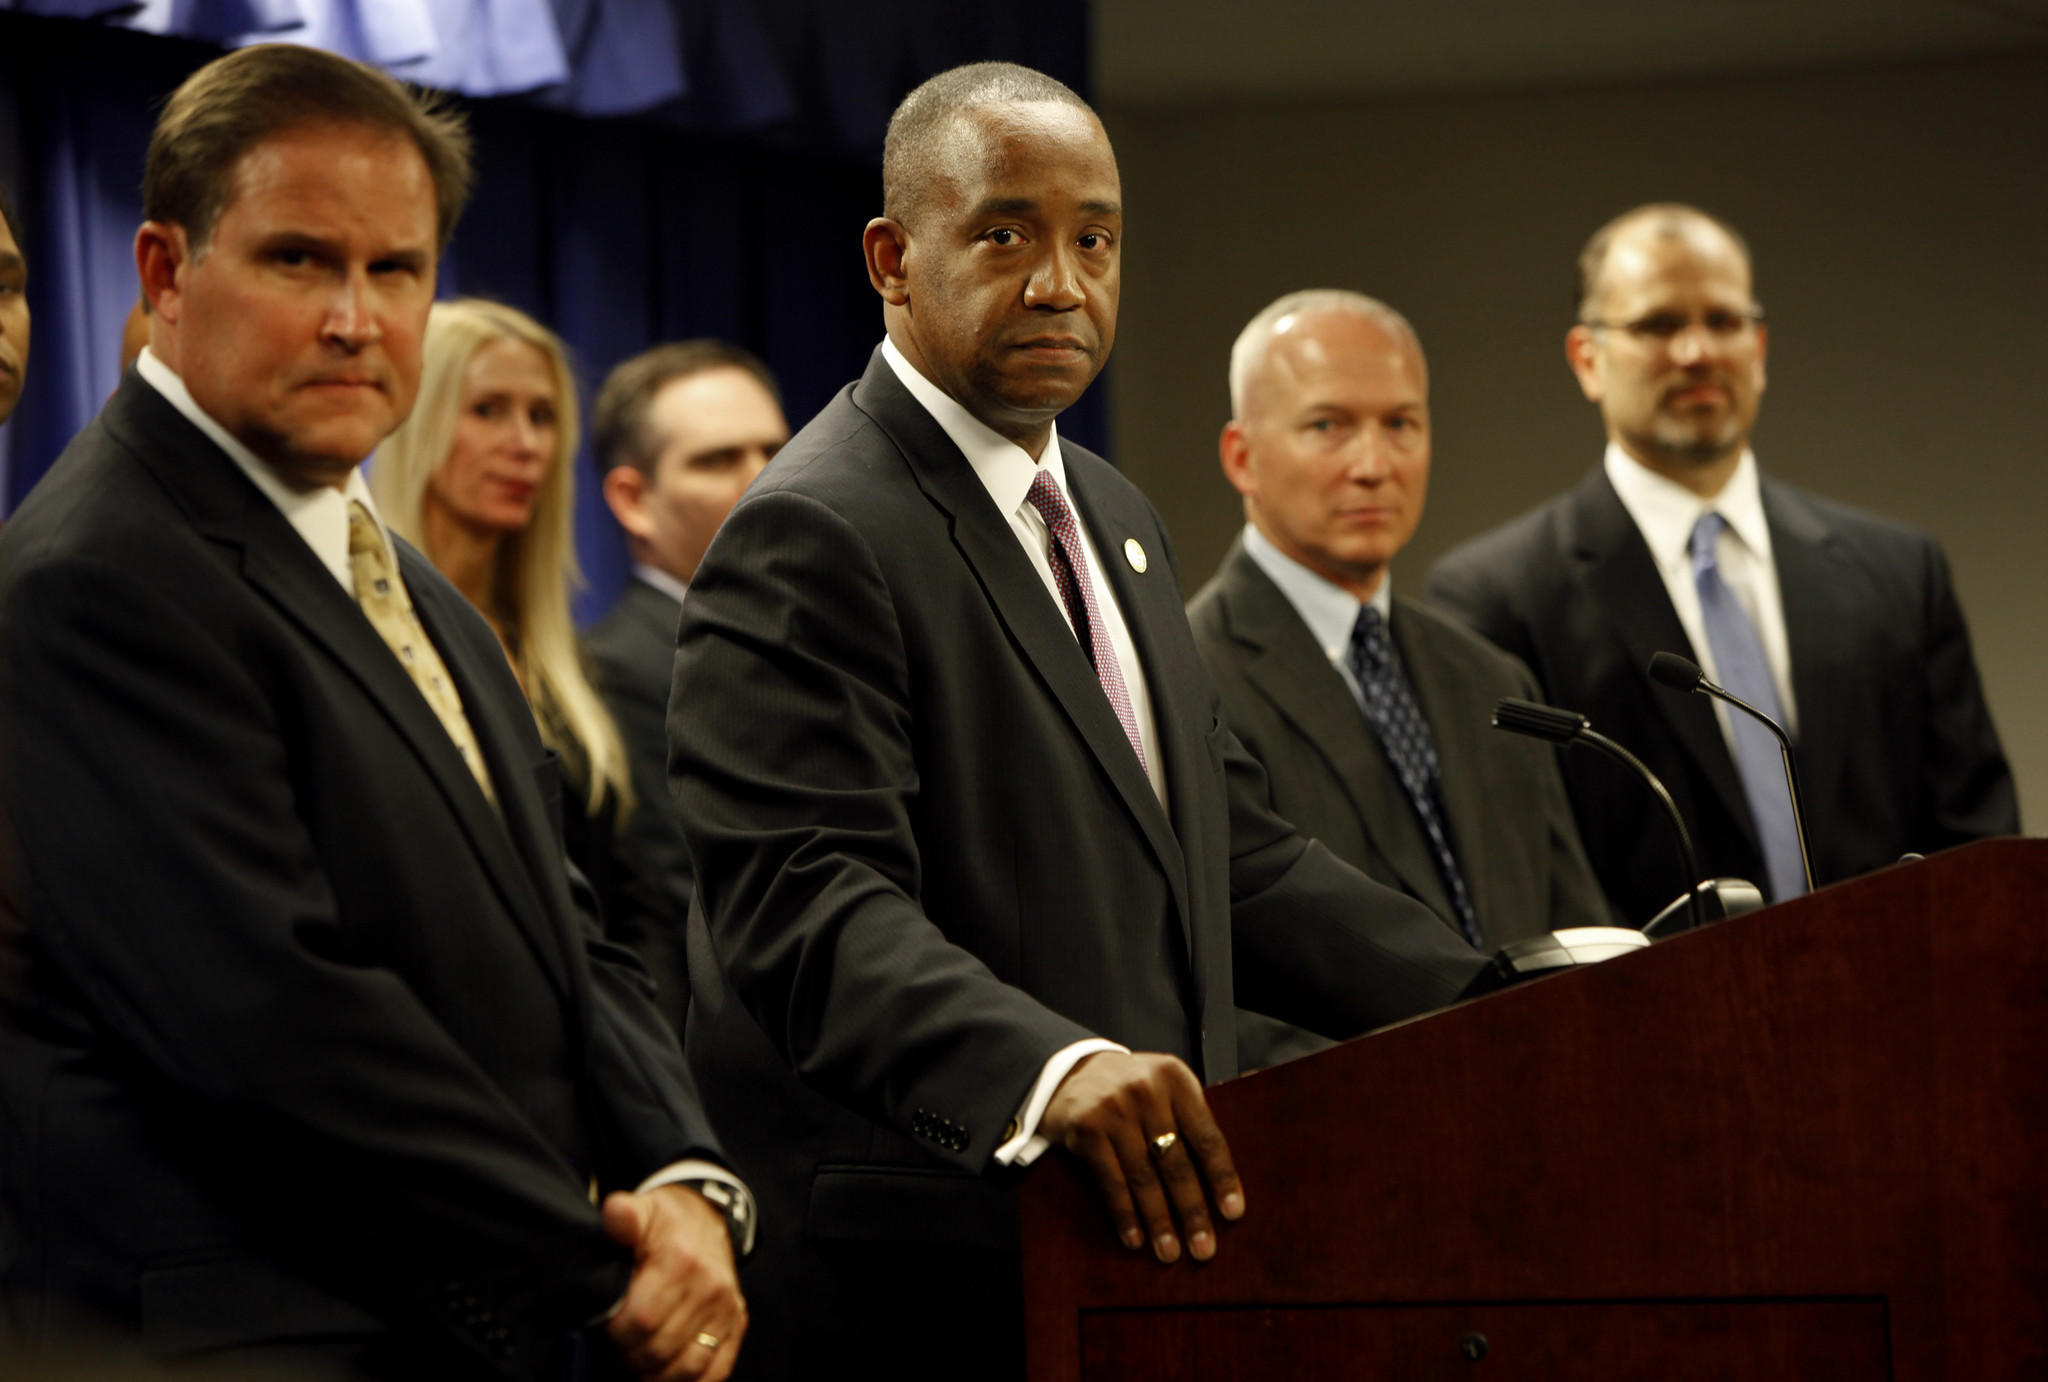 President Barack Obama on Thursday tapped U.S. Atty. Andre Birotte Jr., center, to serve on the federal bench in the central district of California.